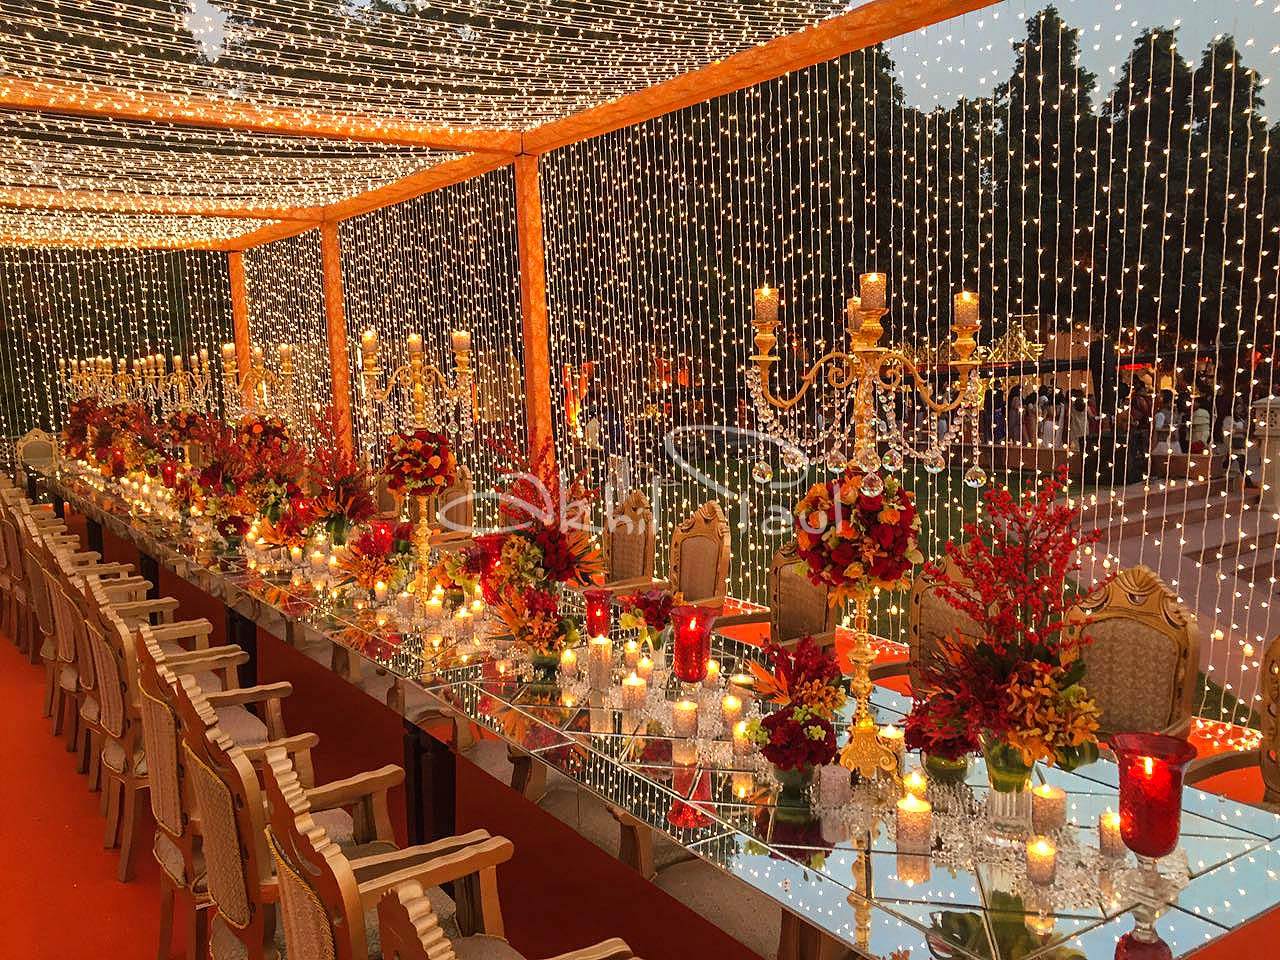 Outdoor Long Dinner Table Decor with Fowers & Lights